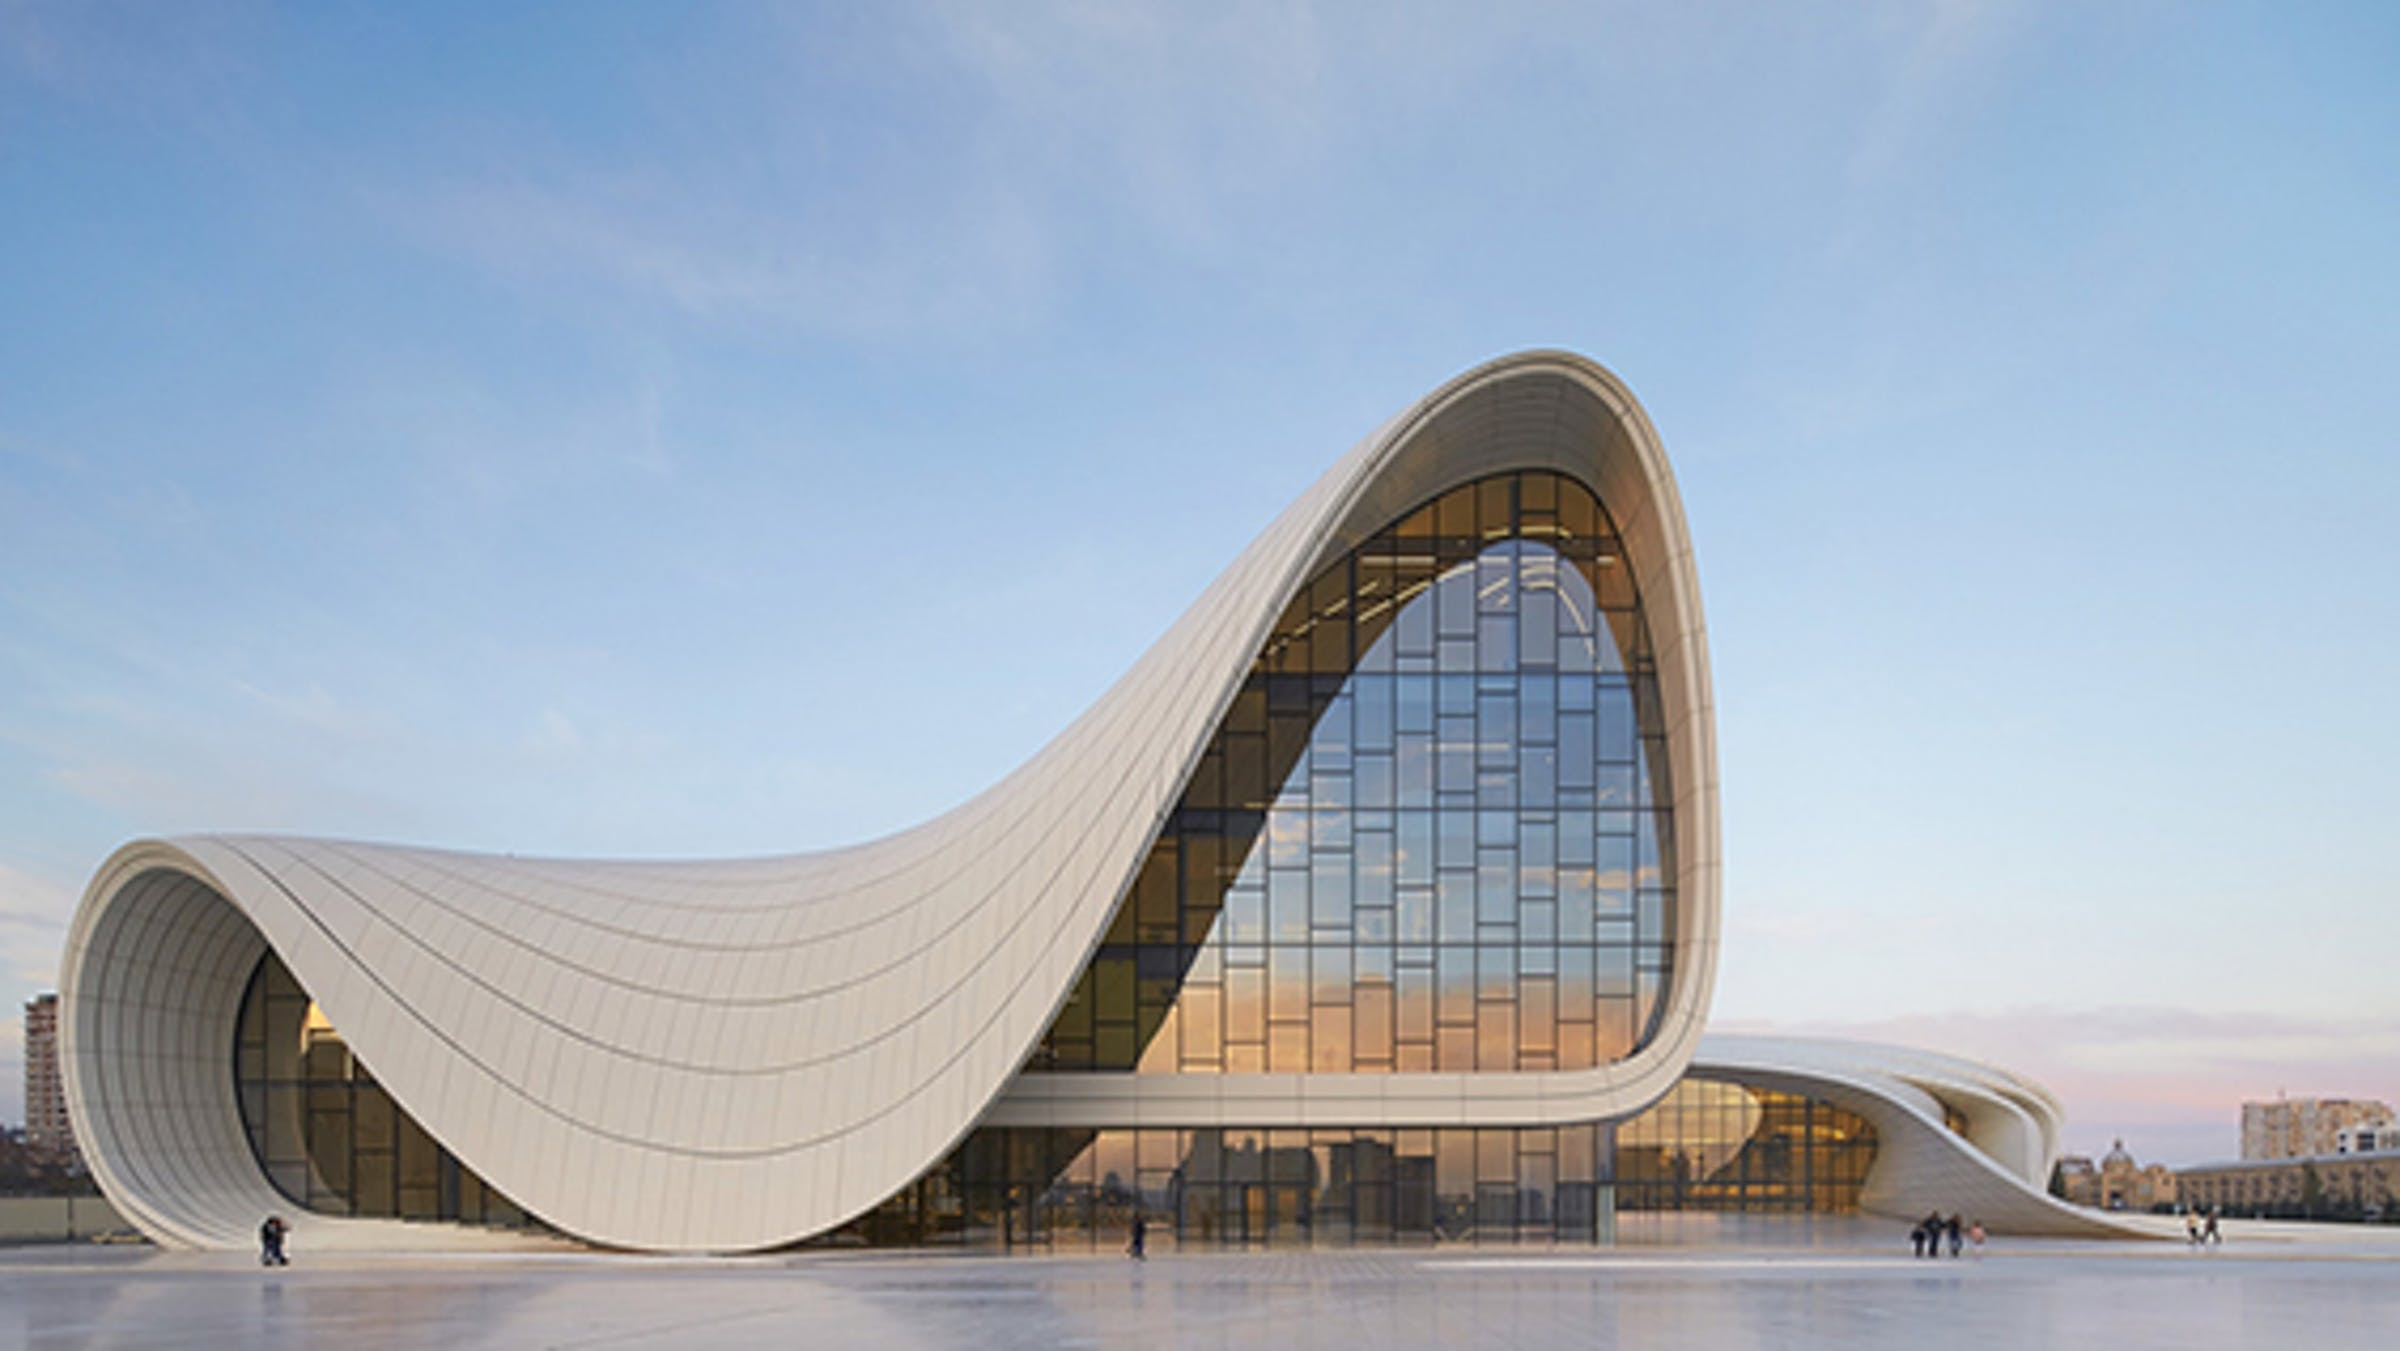 an architectural comparison of the heydar aliyev center and the guggenheim museum Heydar aliyev centre zaha hadid architects was appointed as design architects of the heydar aliyev center following a competition in in this architectural.